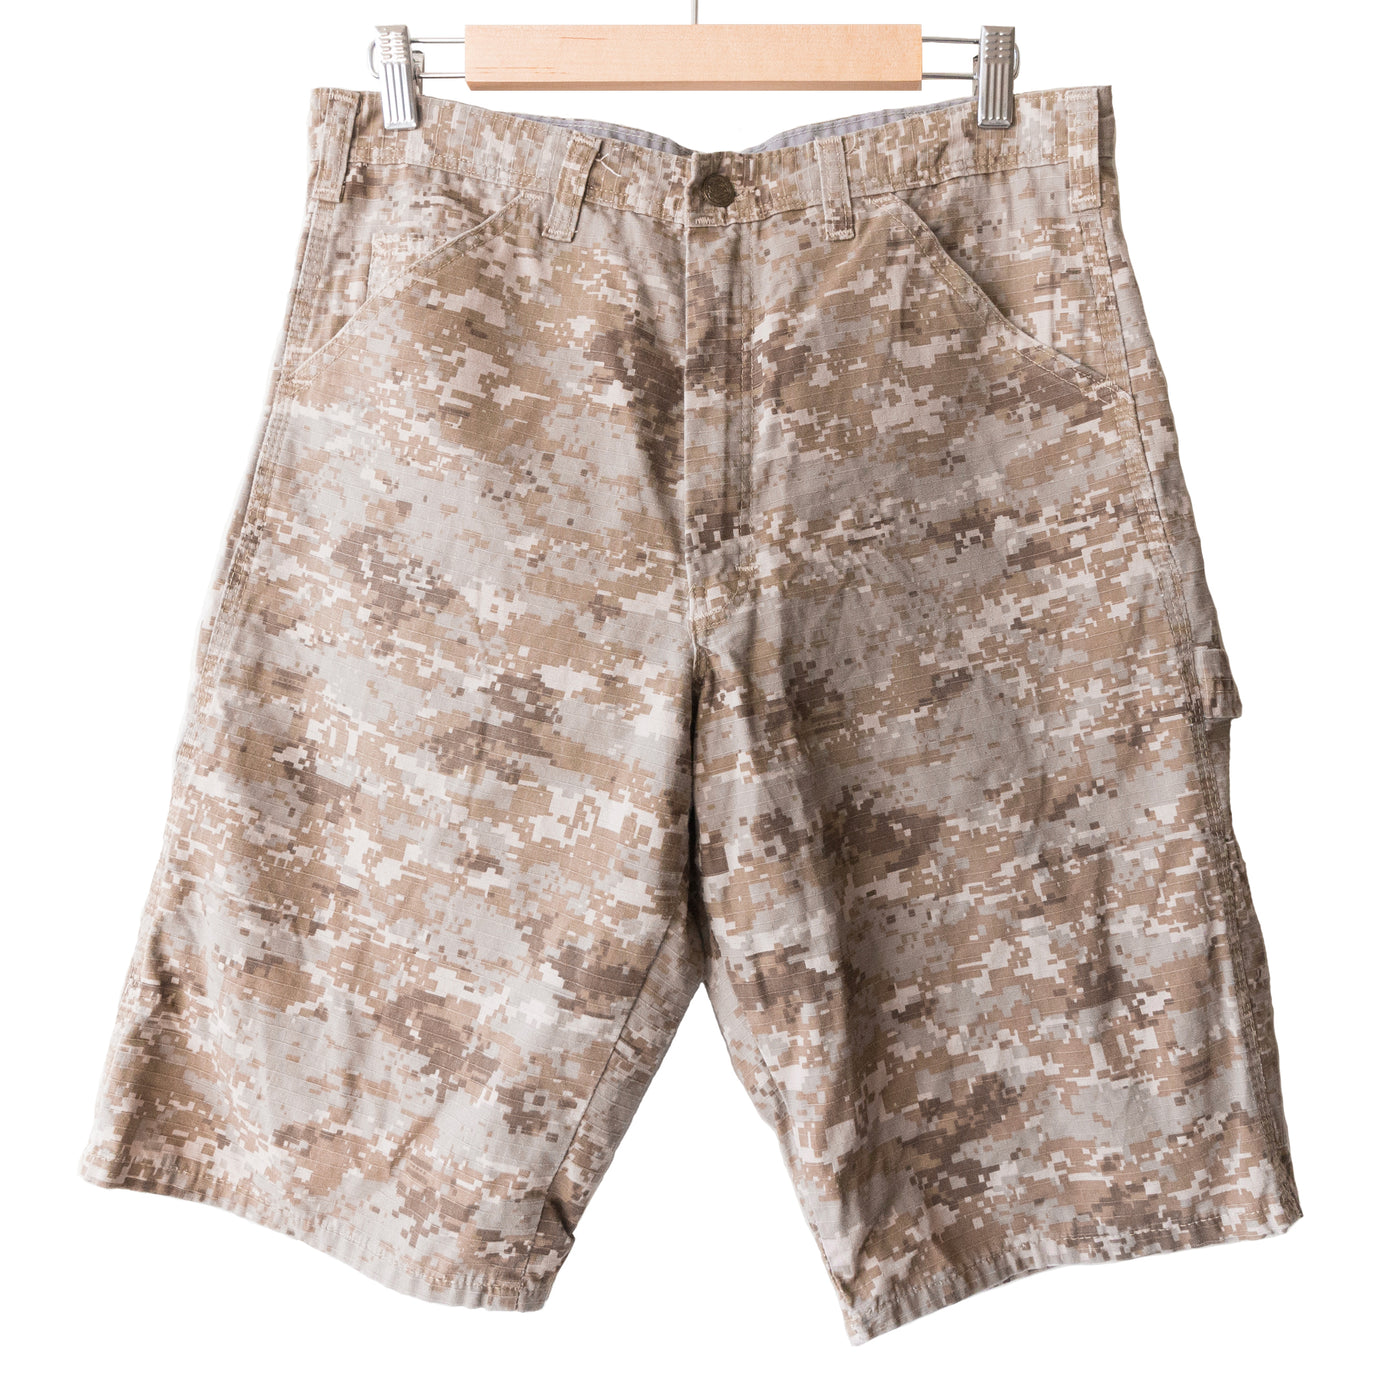 Needles Sportswear Tan Digital Camo Shorts